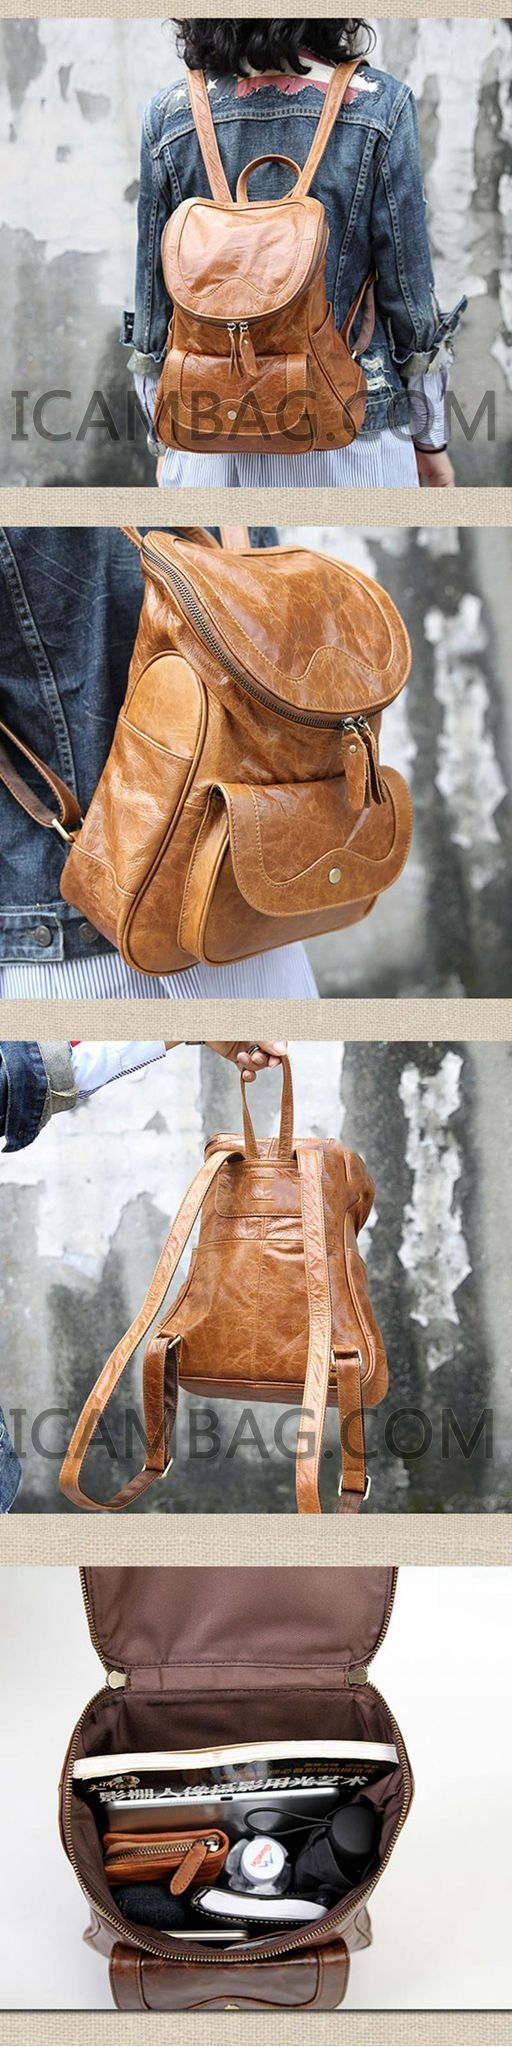 HANDCARTED LEATHER TRAVEL BACKPACK BAGS, LARGE BACKPACKS